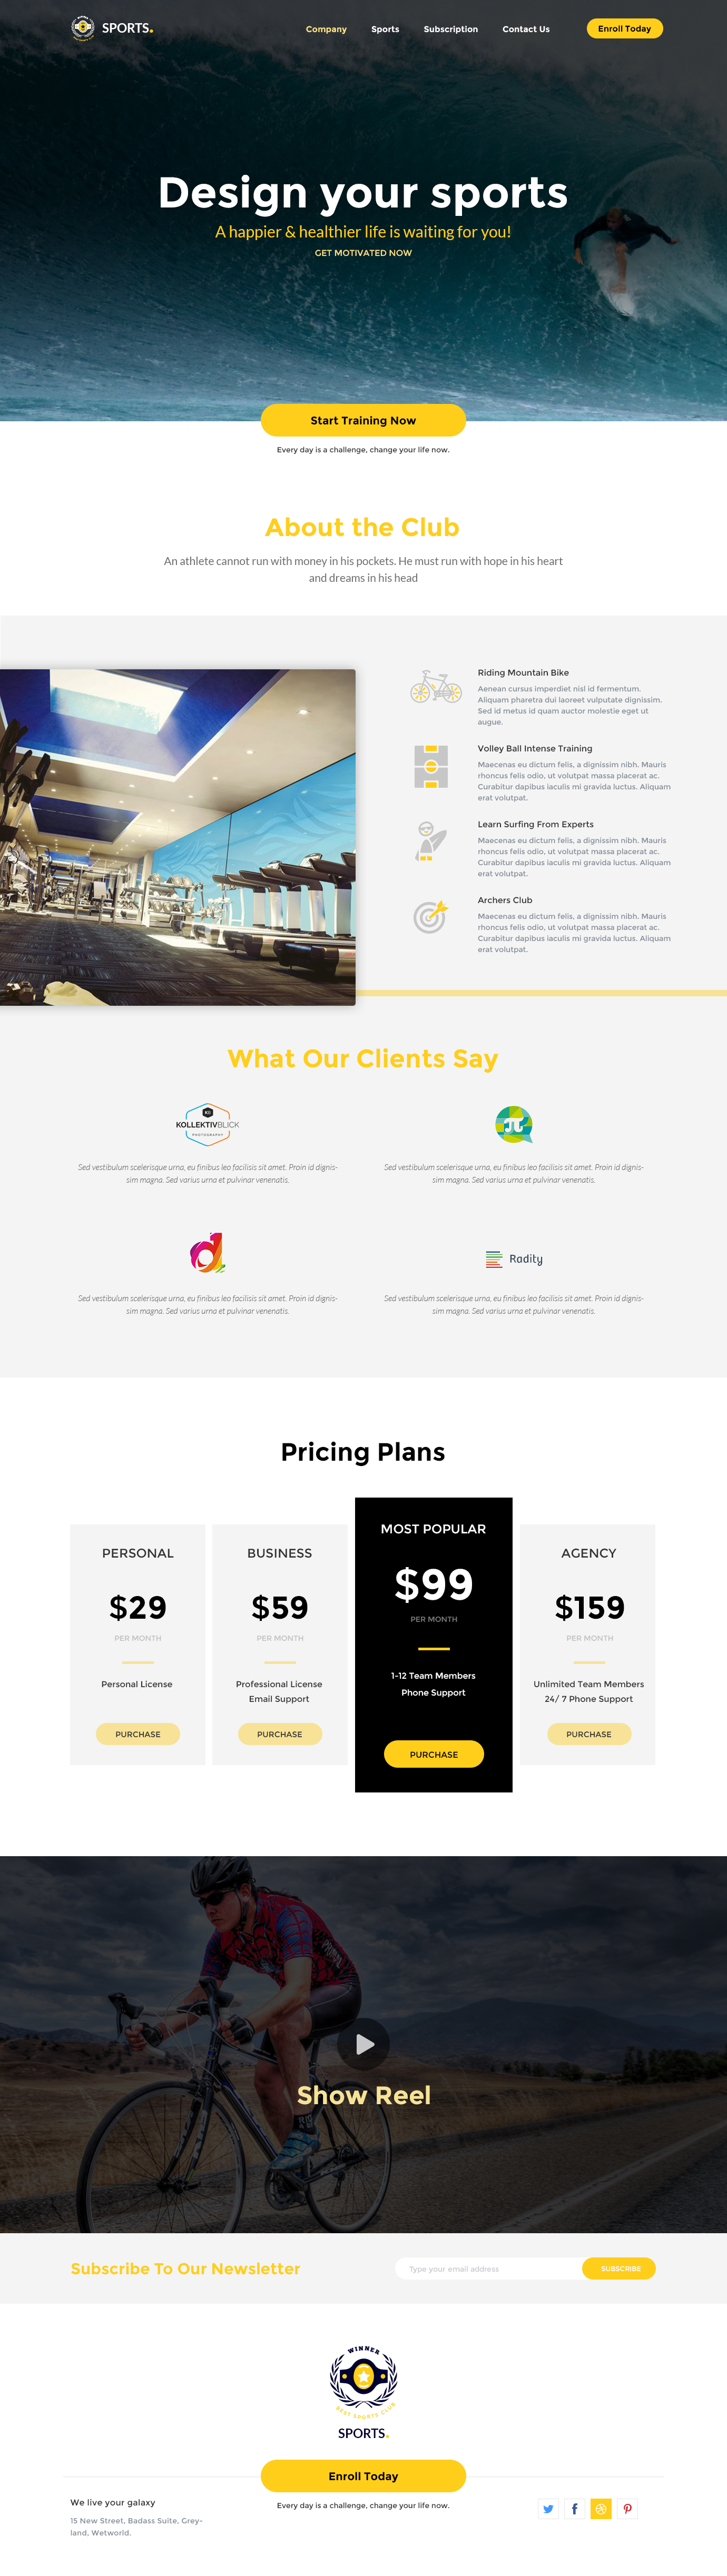 one-page-psd-website-template-sports-free-download